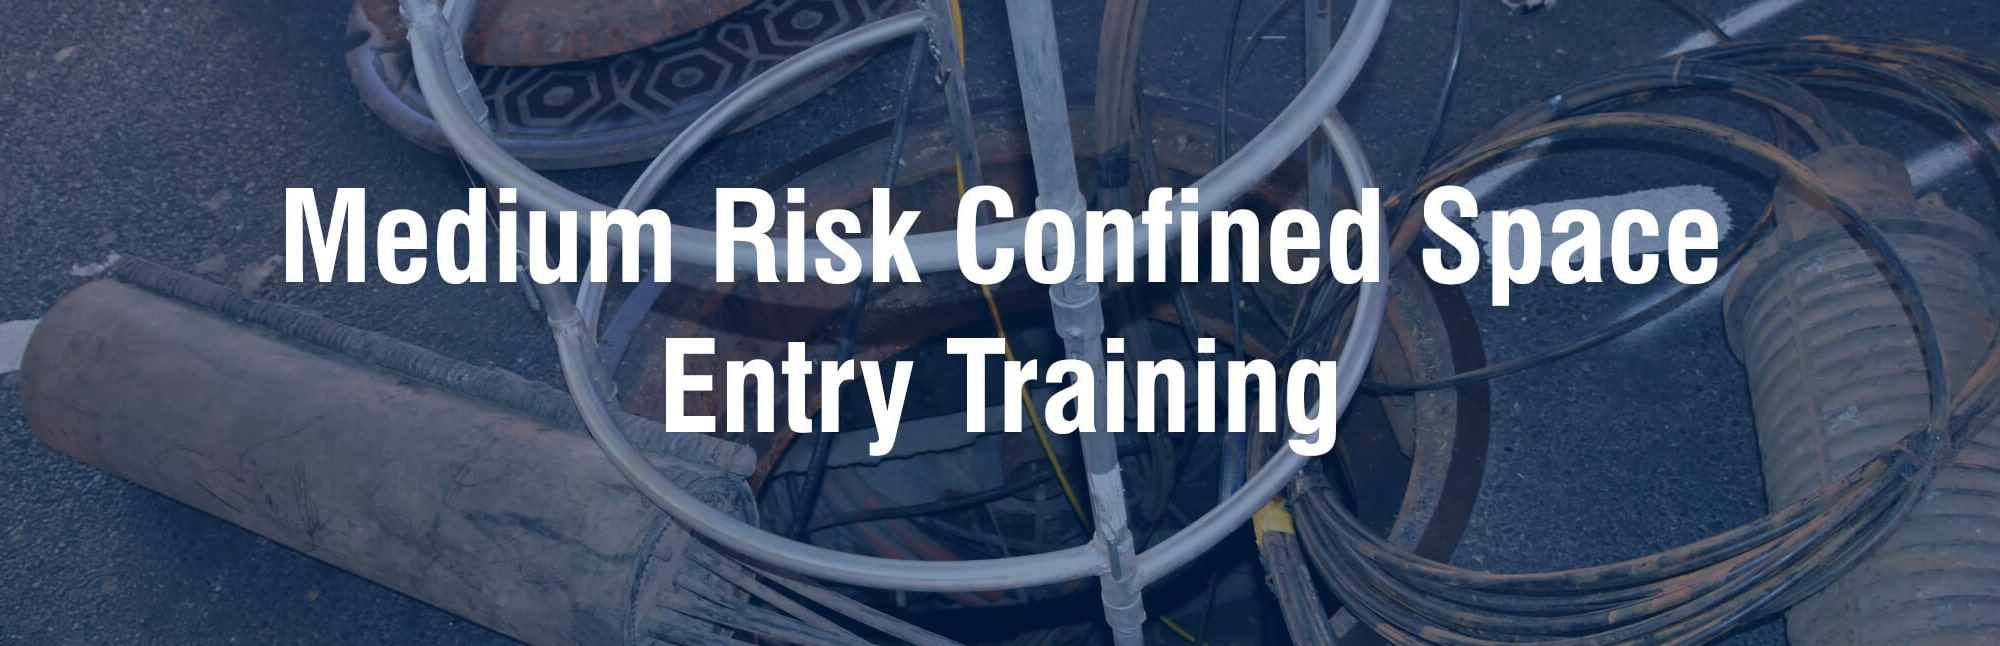 Medium Risk Confined Space Entry Training